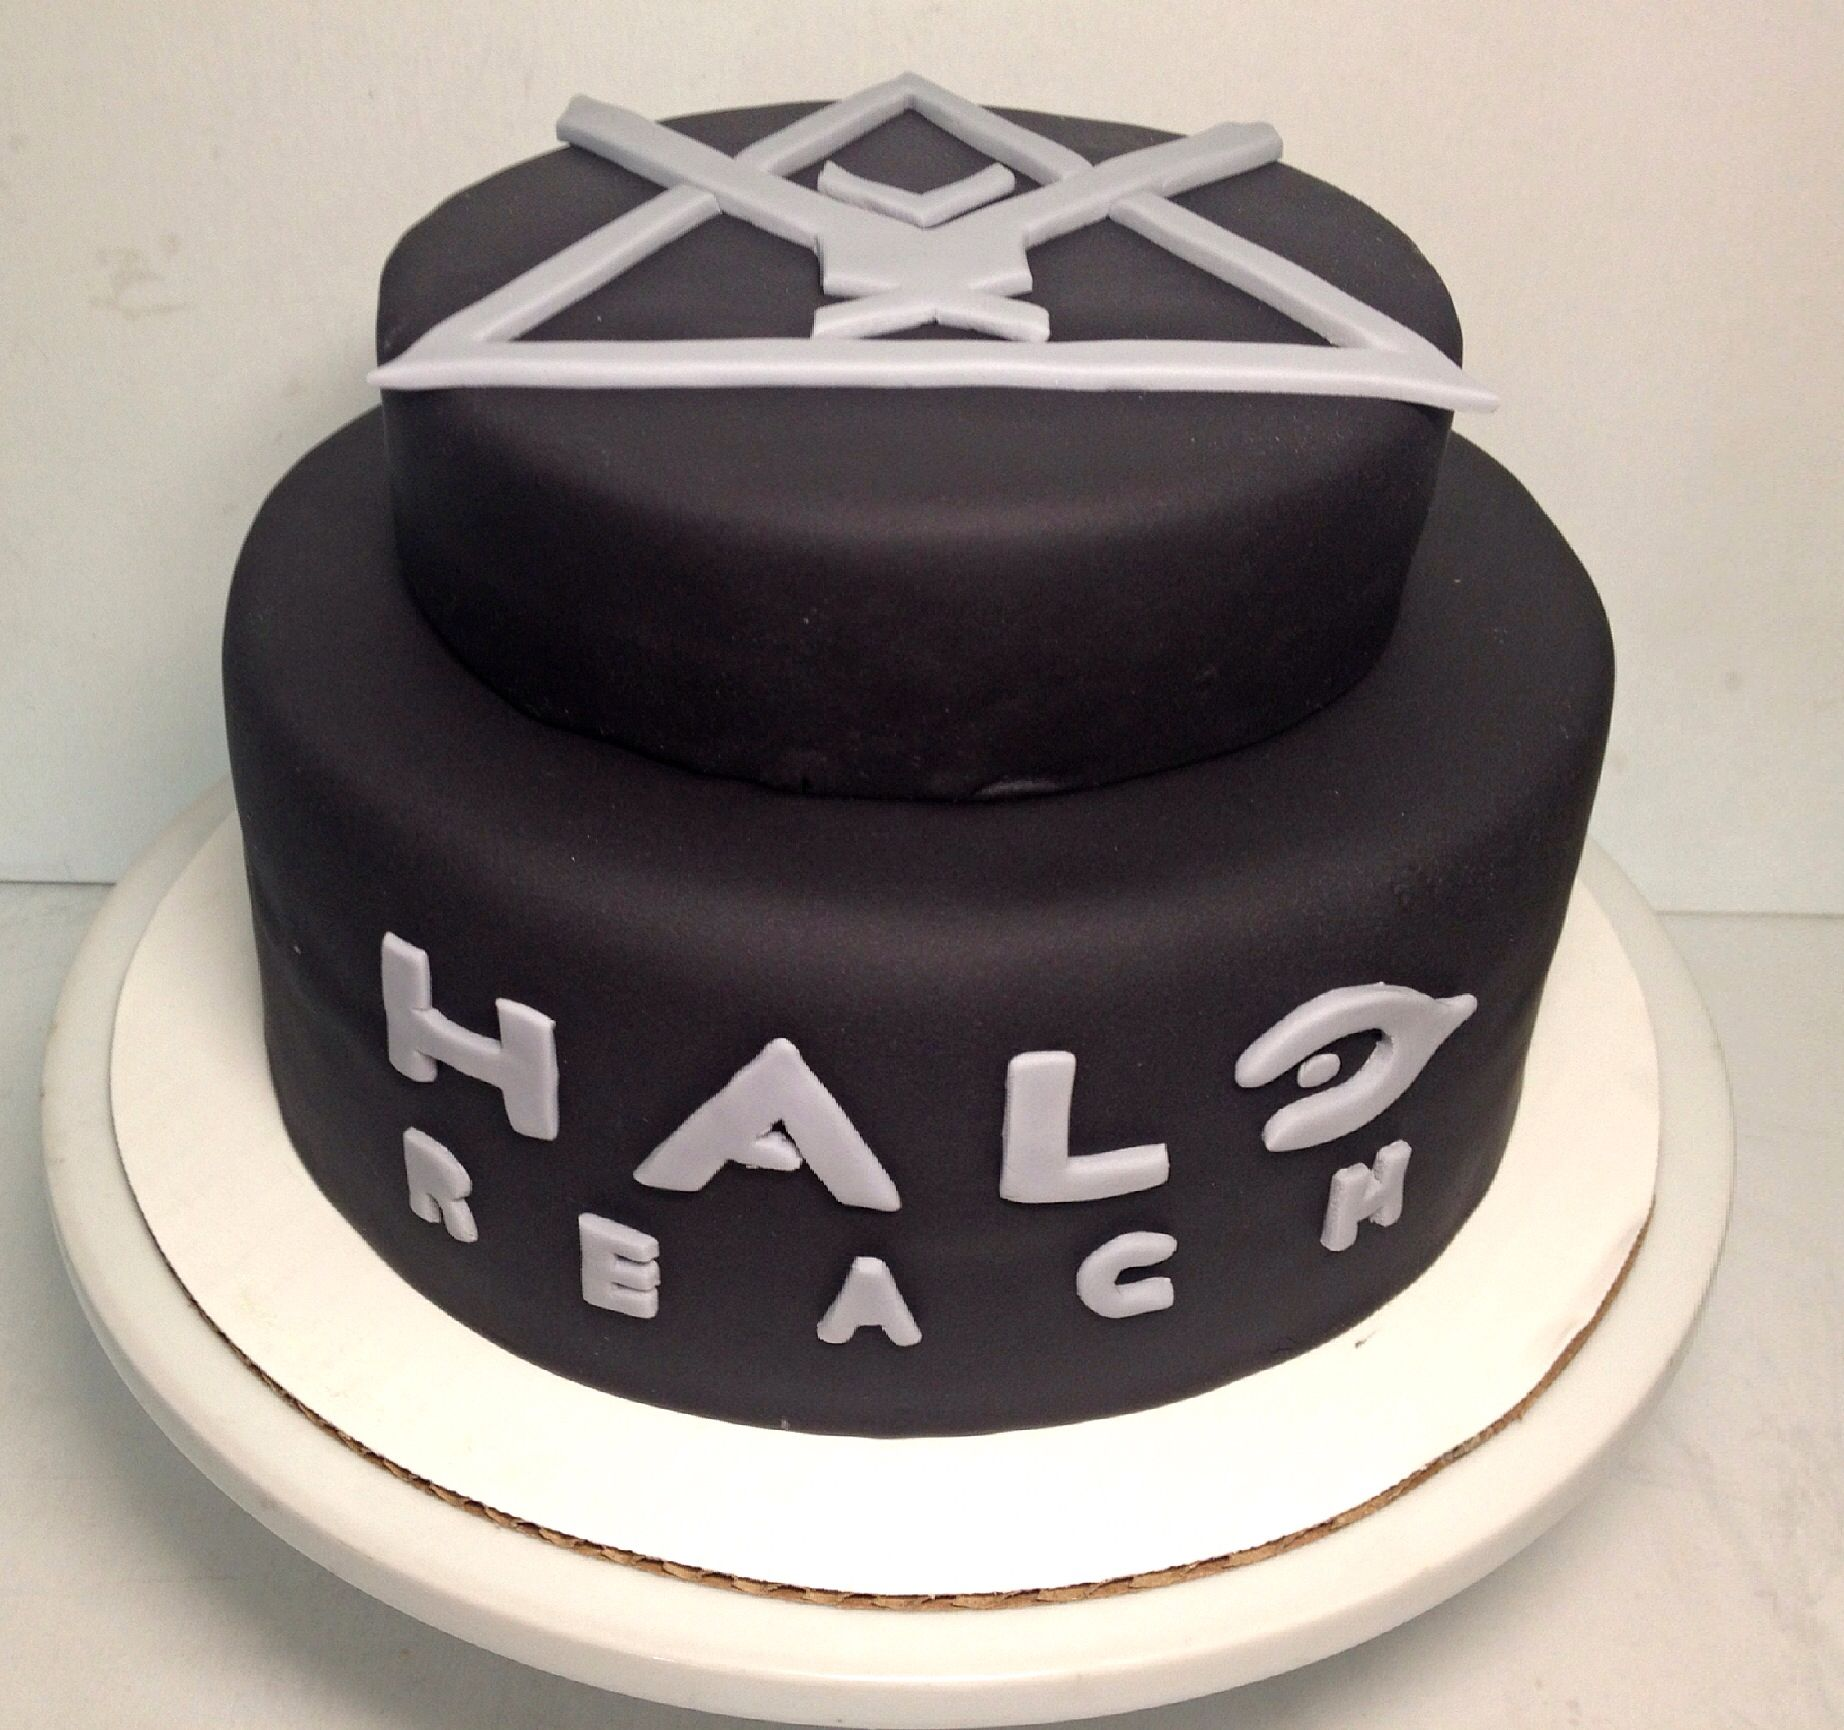 Halo Reach birthday cake 2 tier cake with fondant symbol and logo